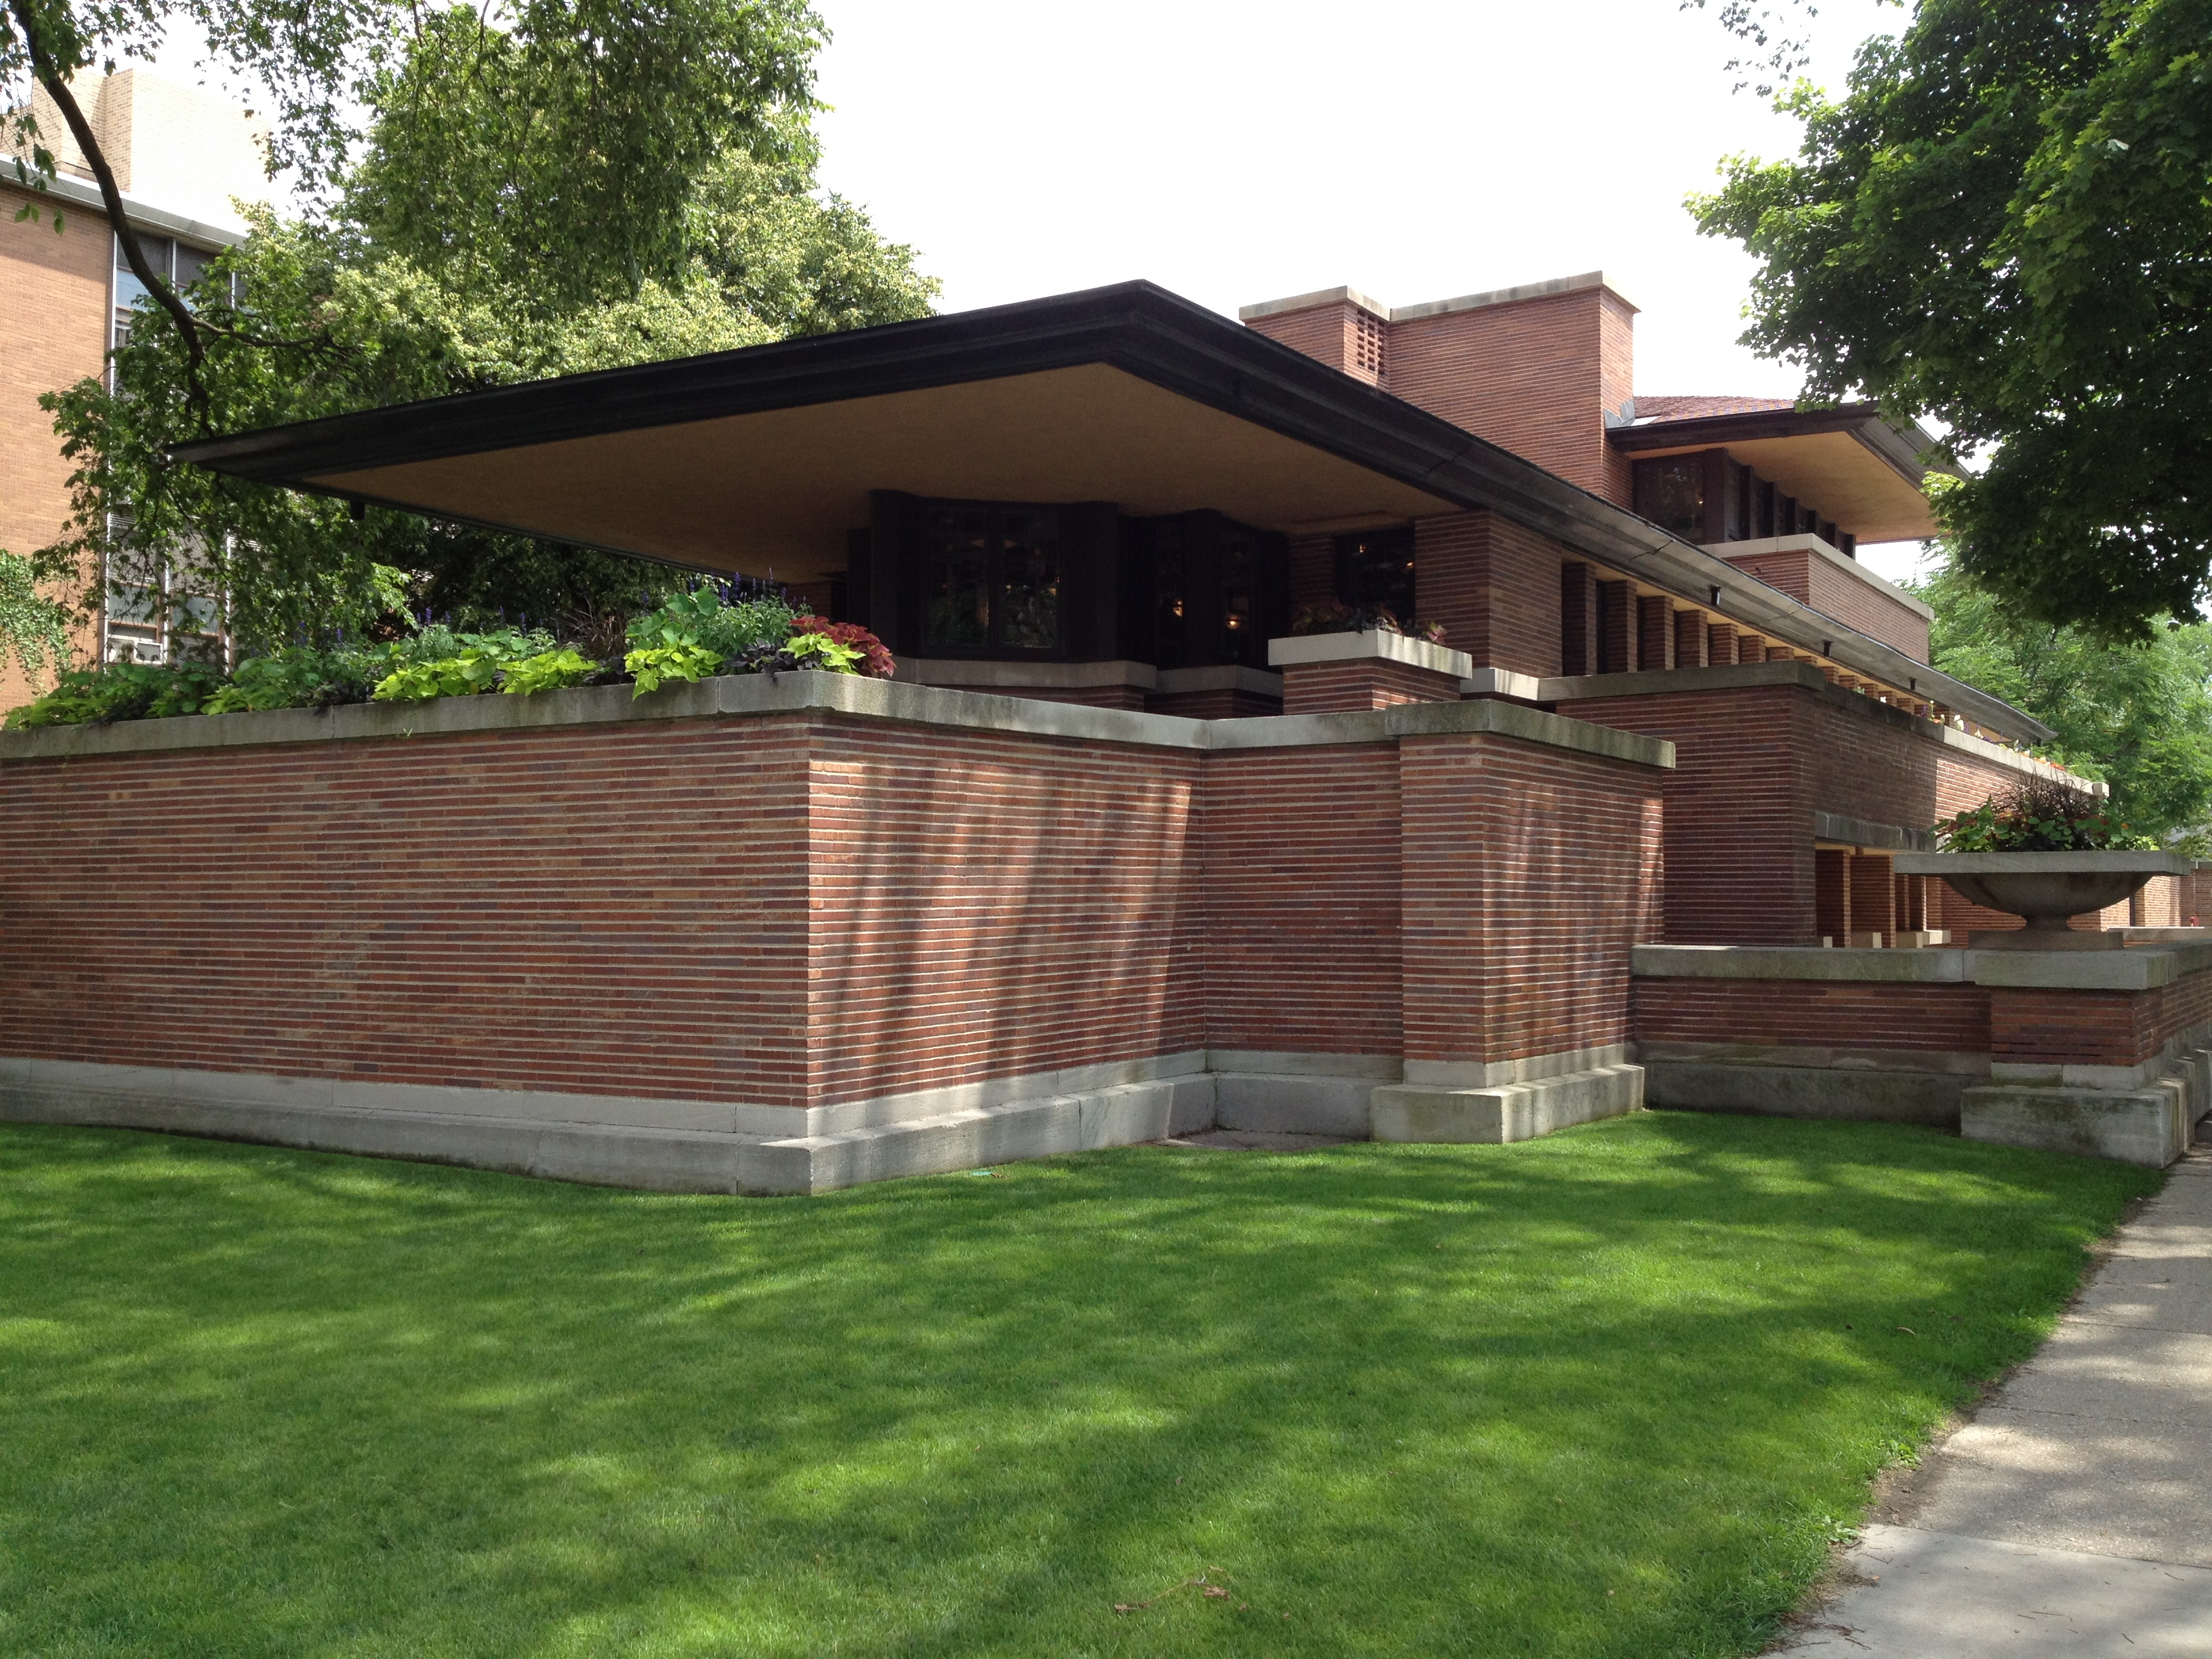 frank lloyd wright webner house. Black Bedroom Furniture Sets. Home Design Ideas